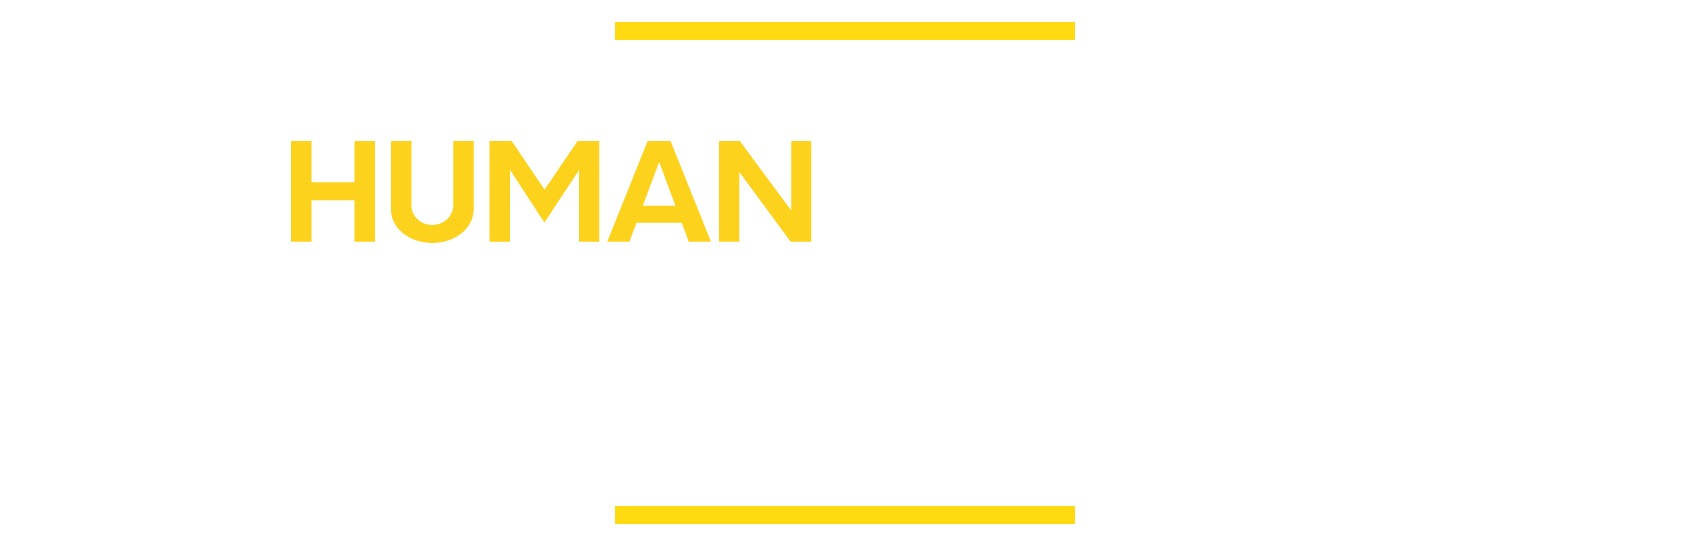 human-workplace-logo-centered-tm.png